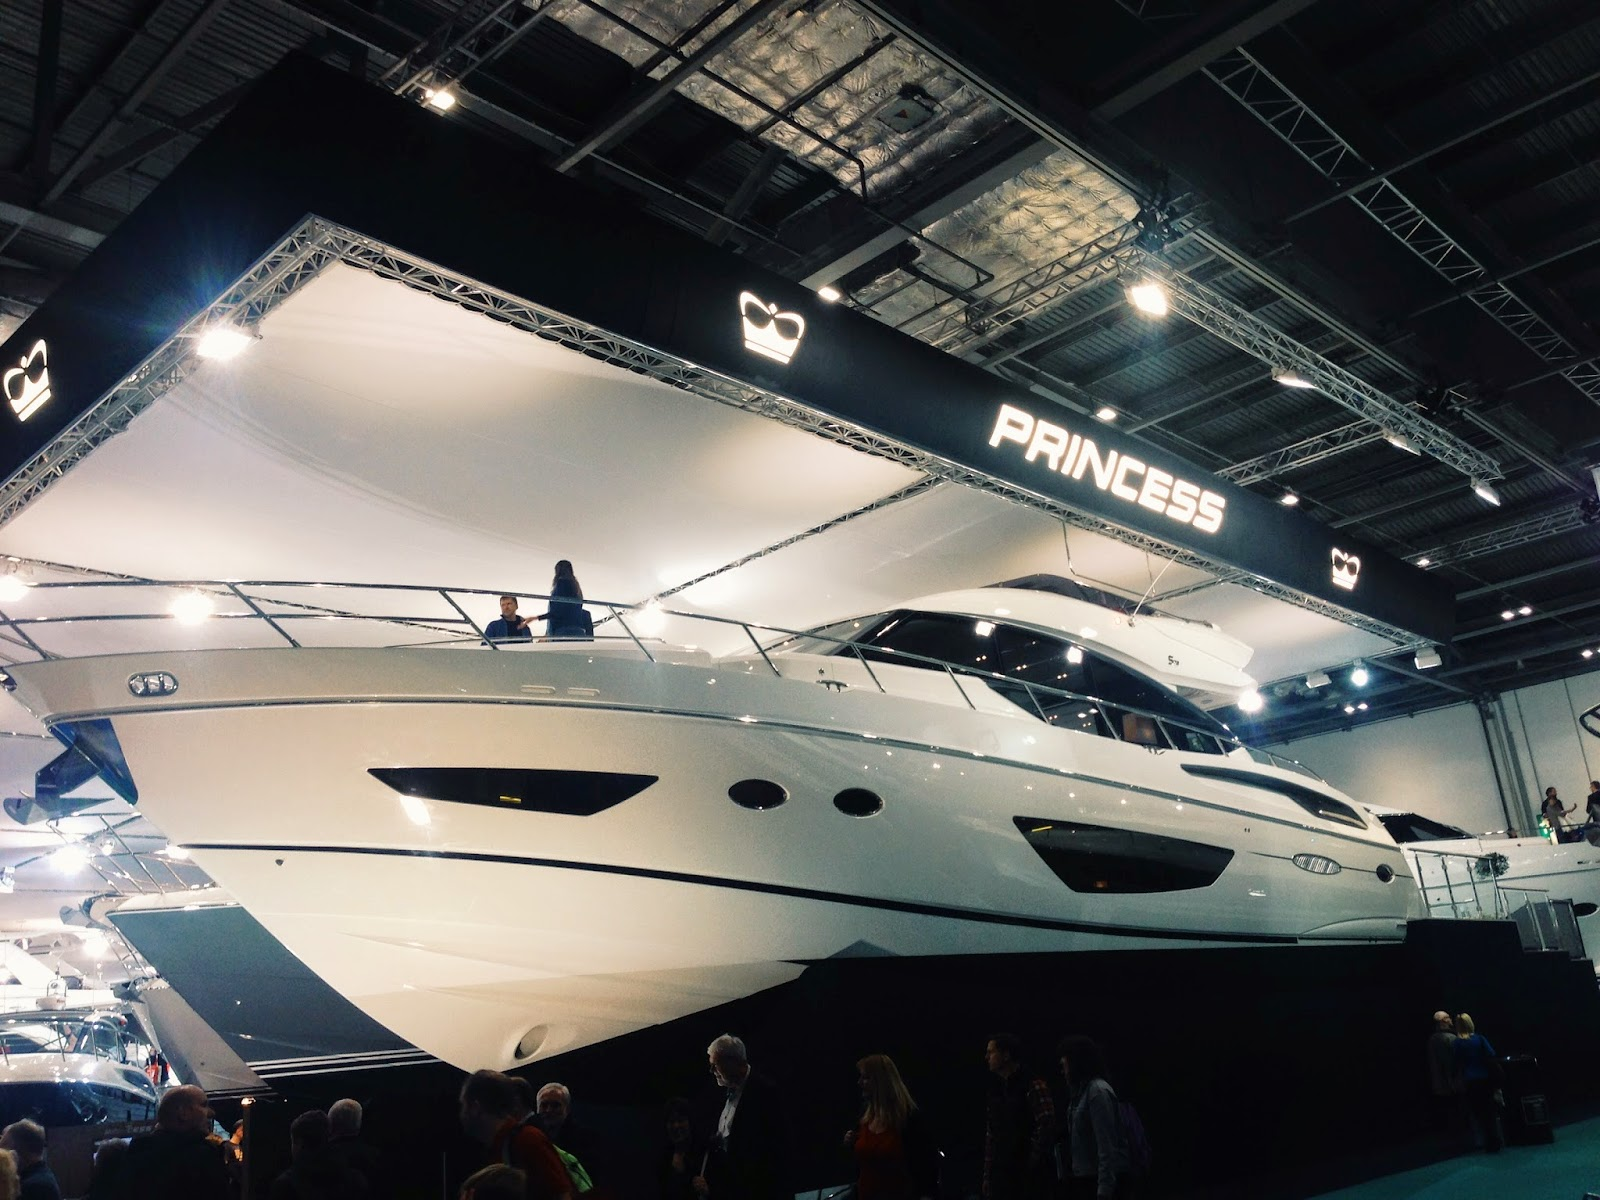 Great start of the Year with Princess at The London Boat Show